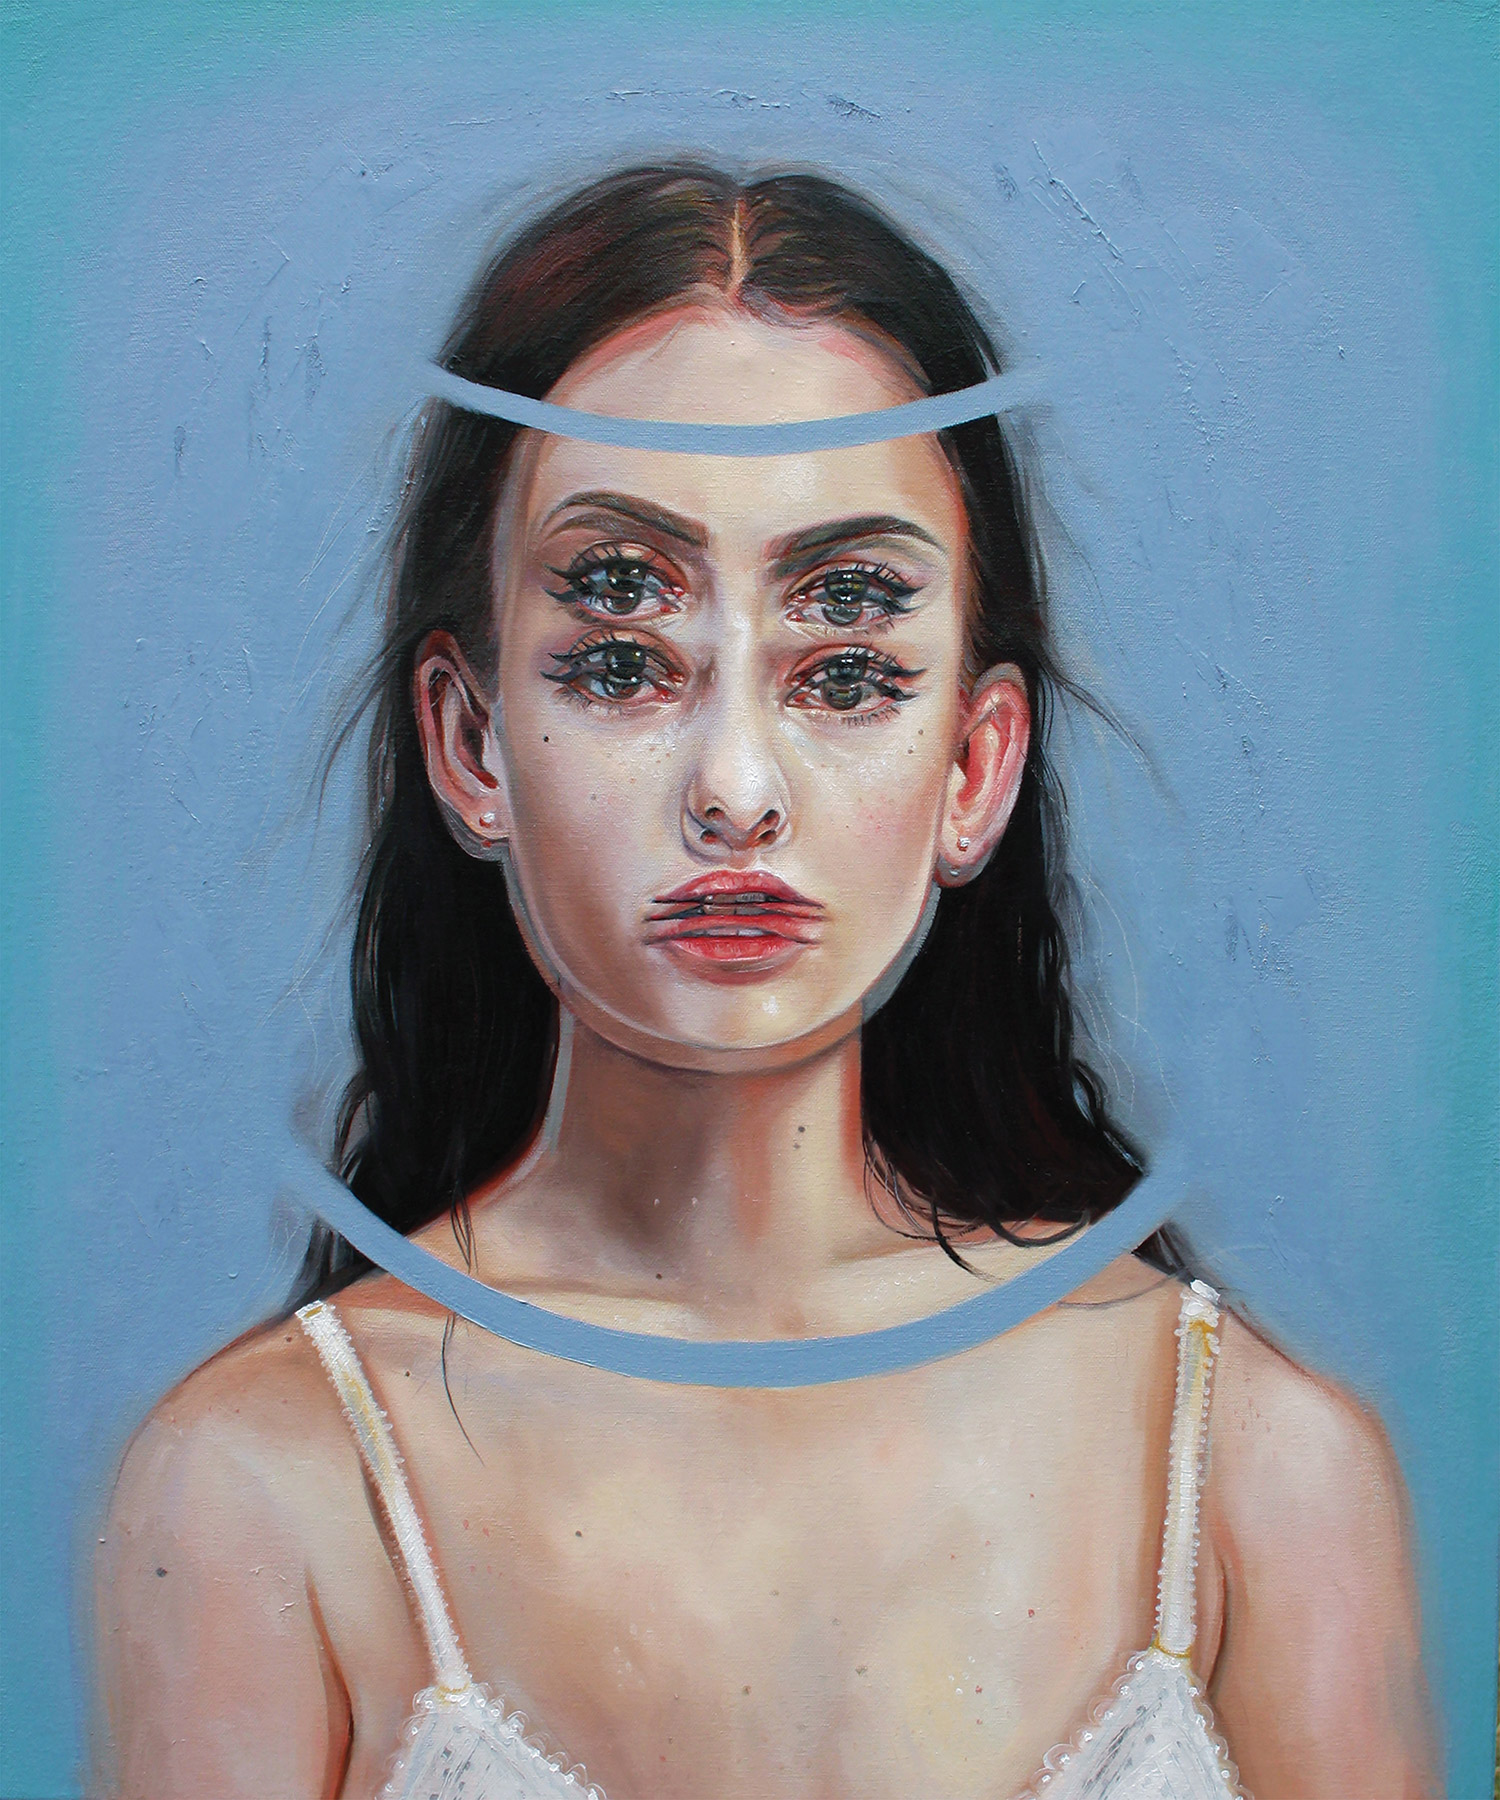 Alex Garant - The Loudest Absence - 2017